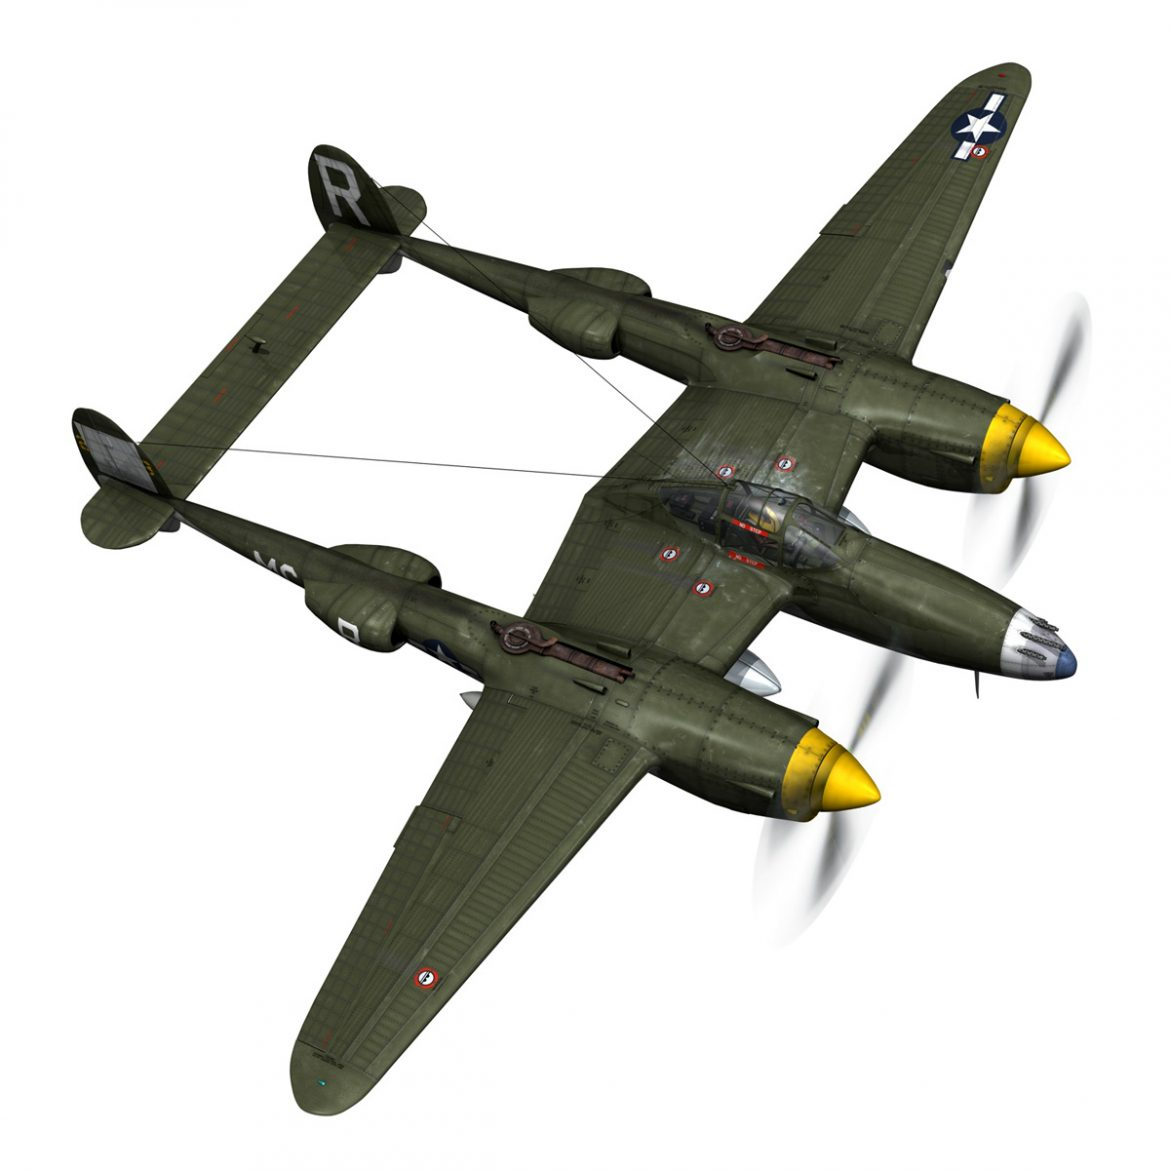 lockheed p-38 lightning – gentle annie 3d model fbx c4d lwo obj 300087